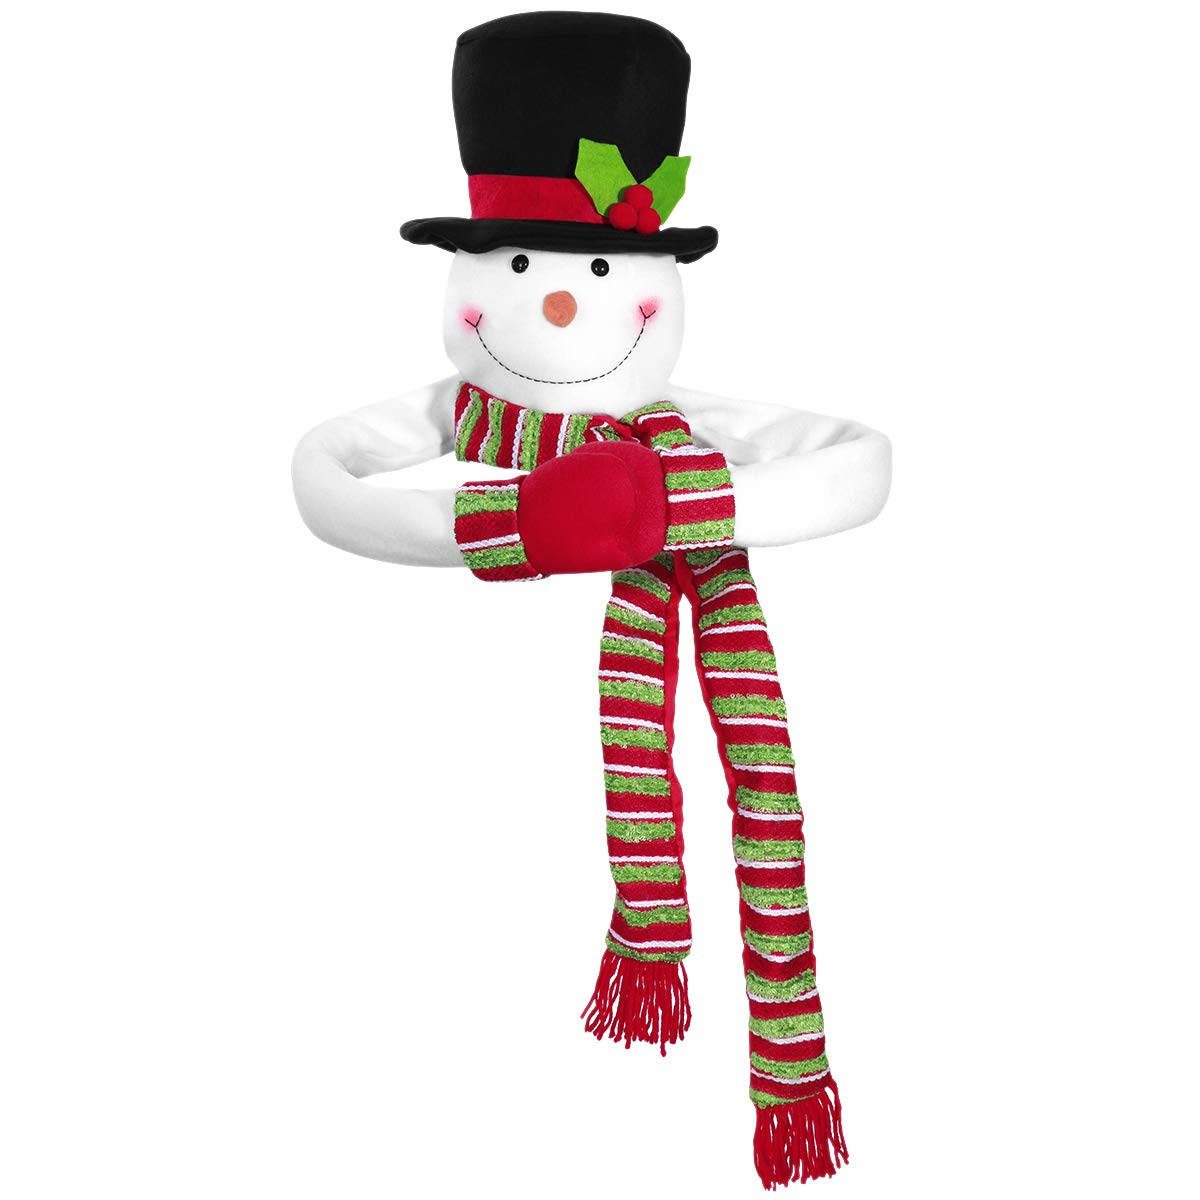 TOYMYTOY Christmas Tree Topper Snowman Top Hugger for Winter Wonderland Party Thanksgiving New Year Xmas Tree Decorations Ornament